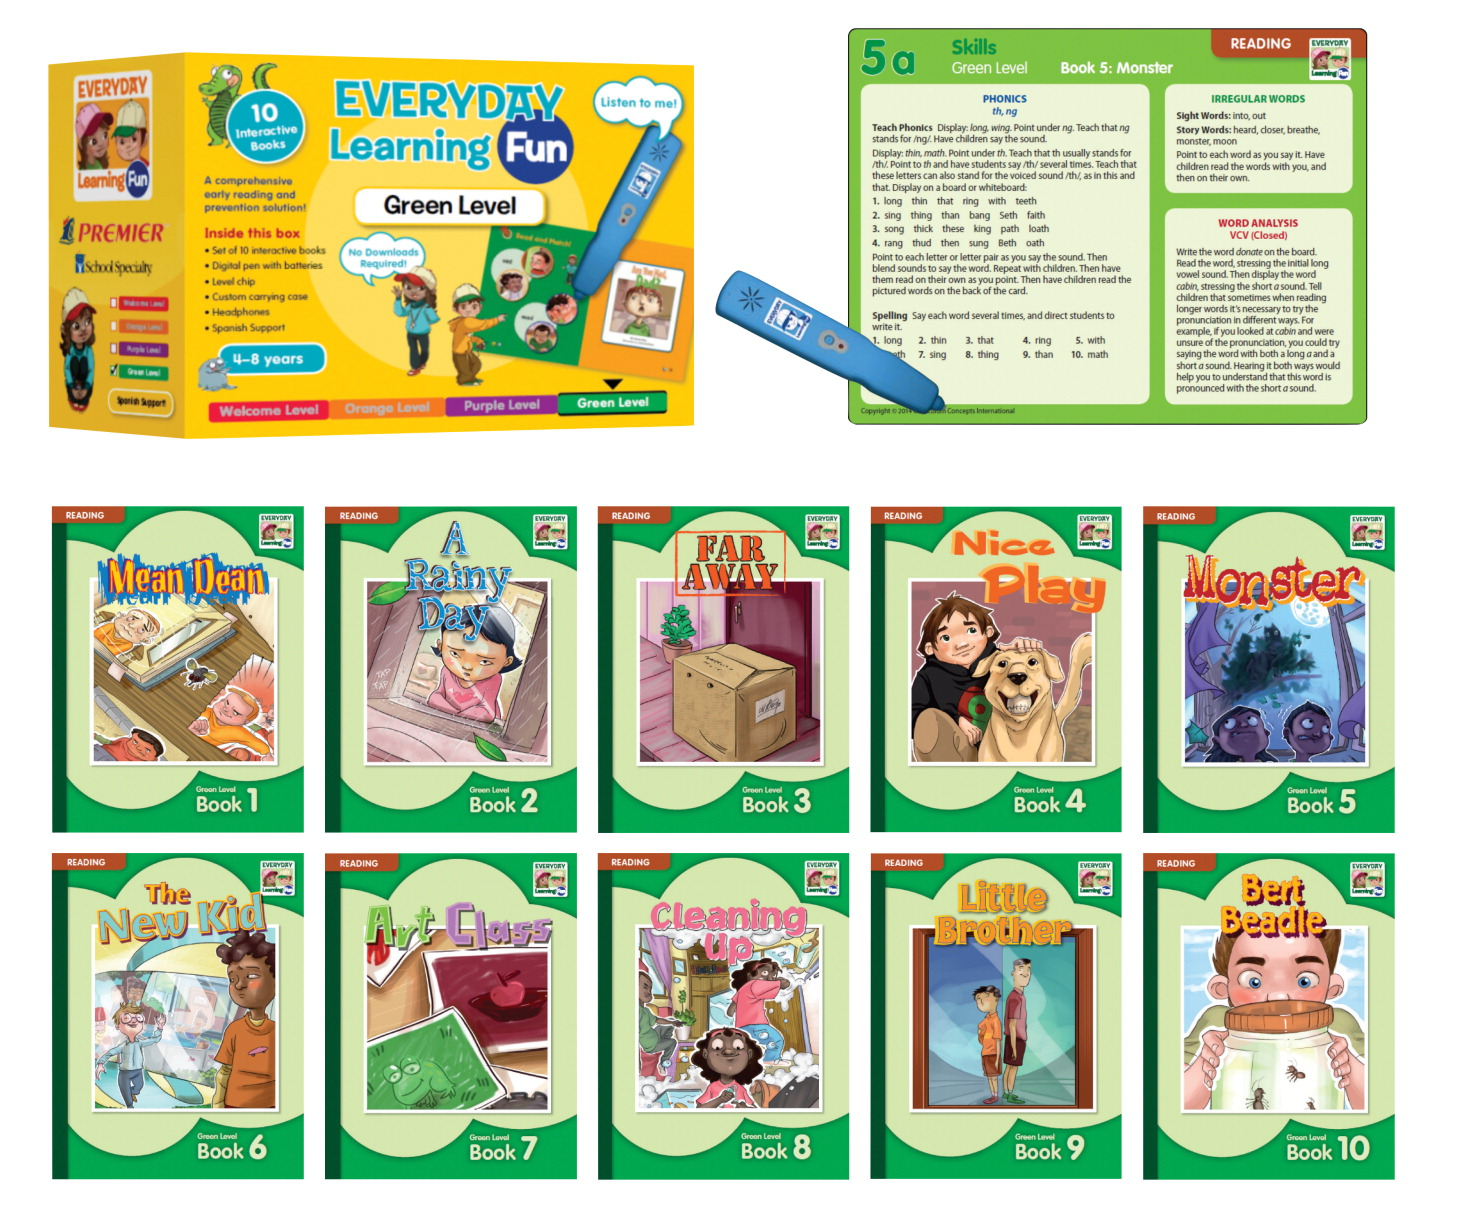 Premier Everyday Learning Fun Reading Teaching Resource Set, Green Level